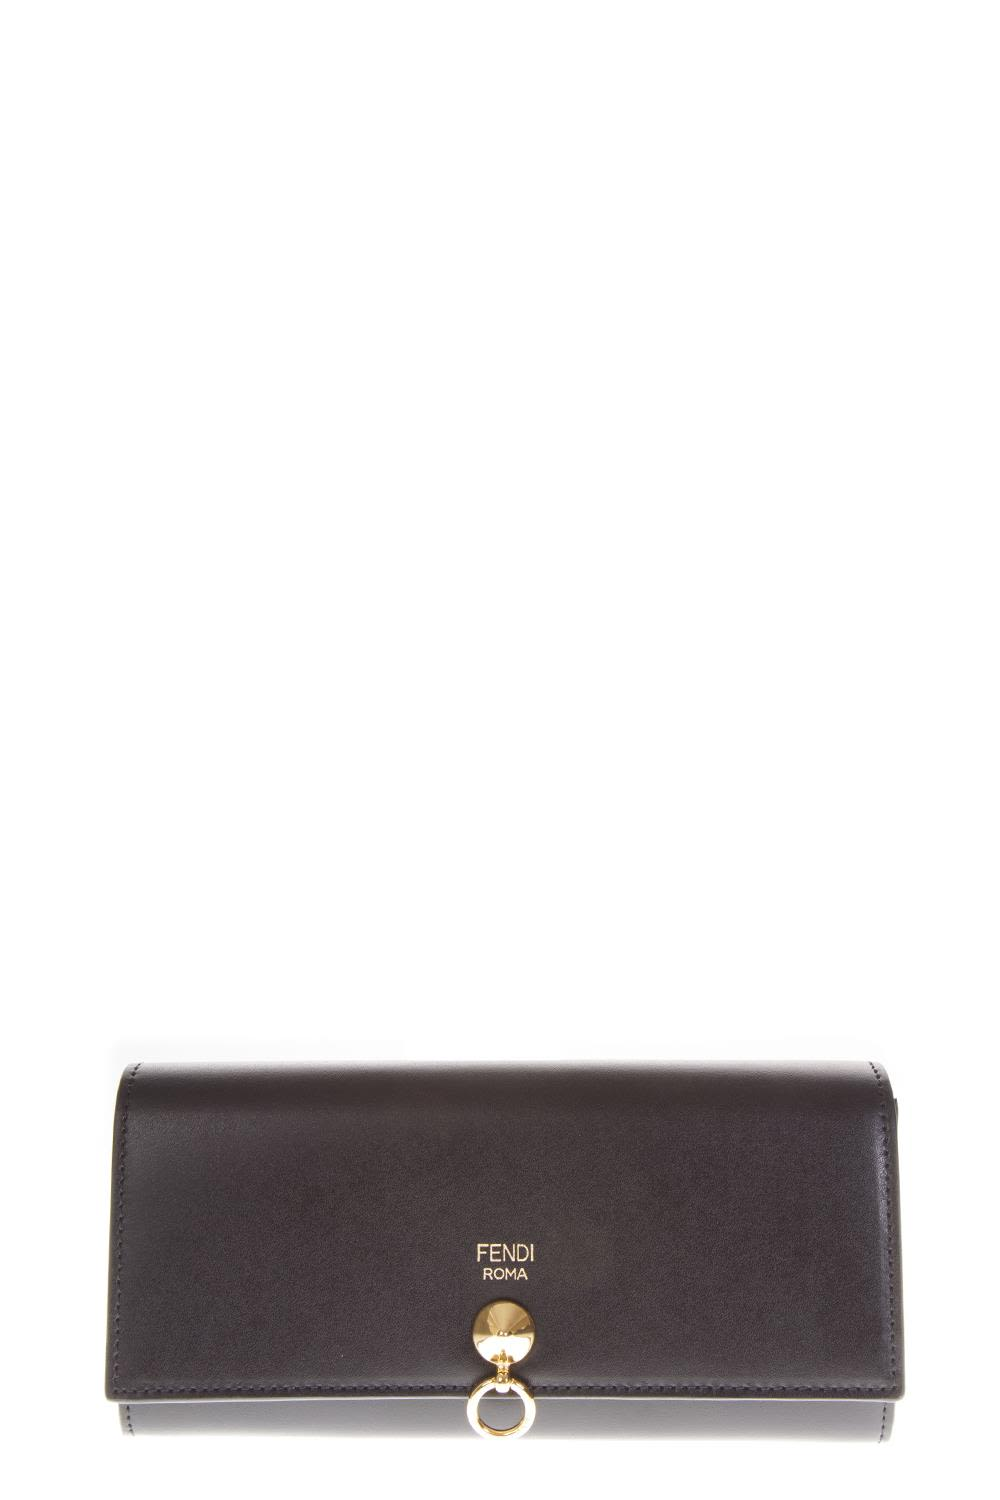 FENDI BLACK CONTINENTAL LEATHER WALLET